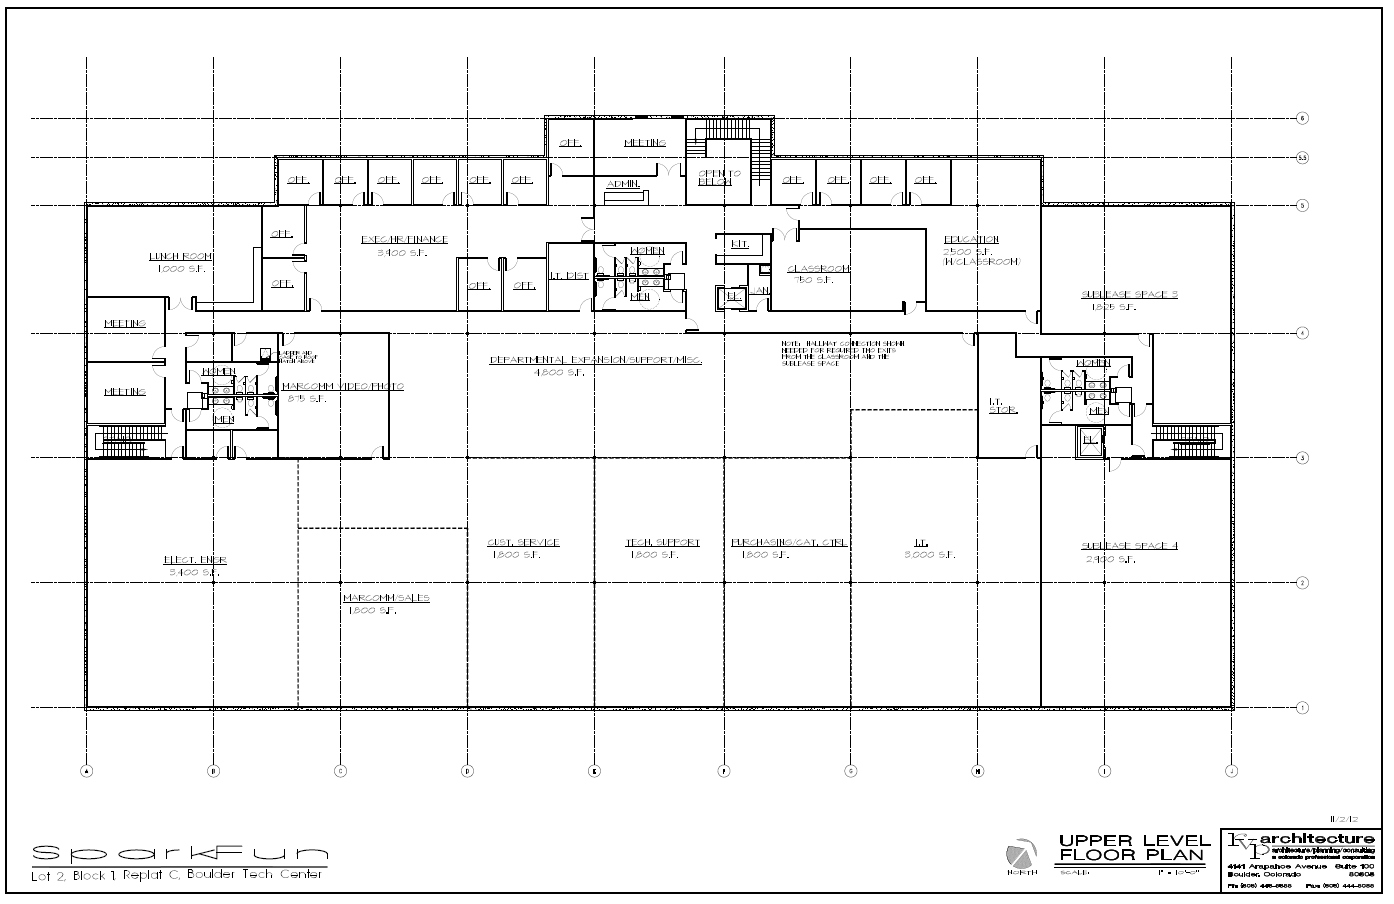 How to build a building news sparkfun electronics floor plans taking shape malvernweather Choice Image